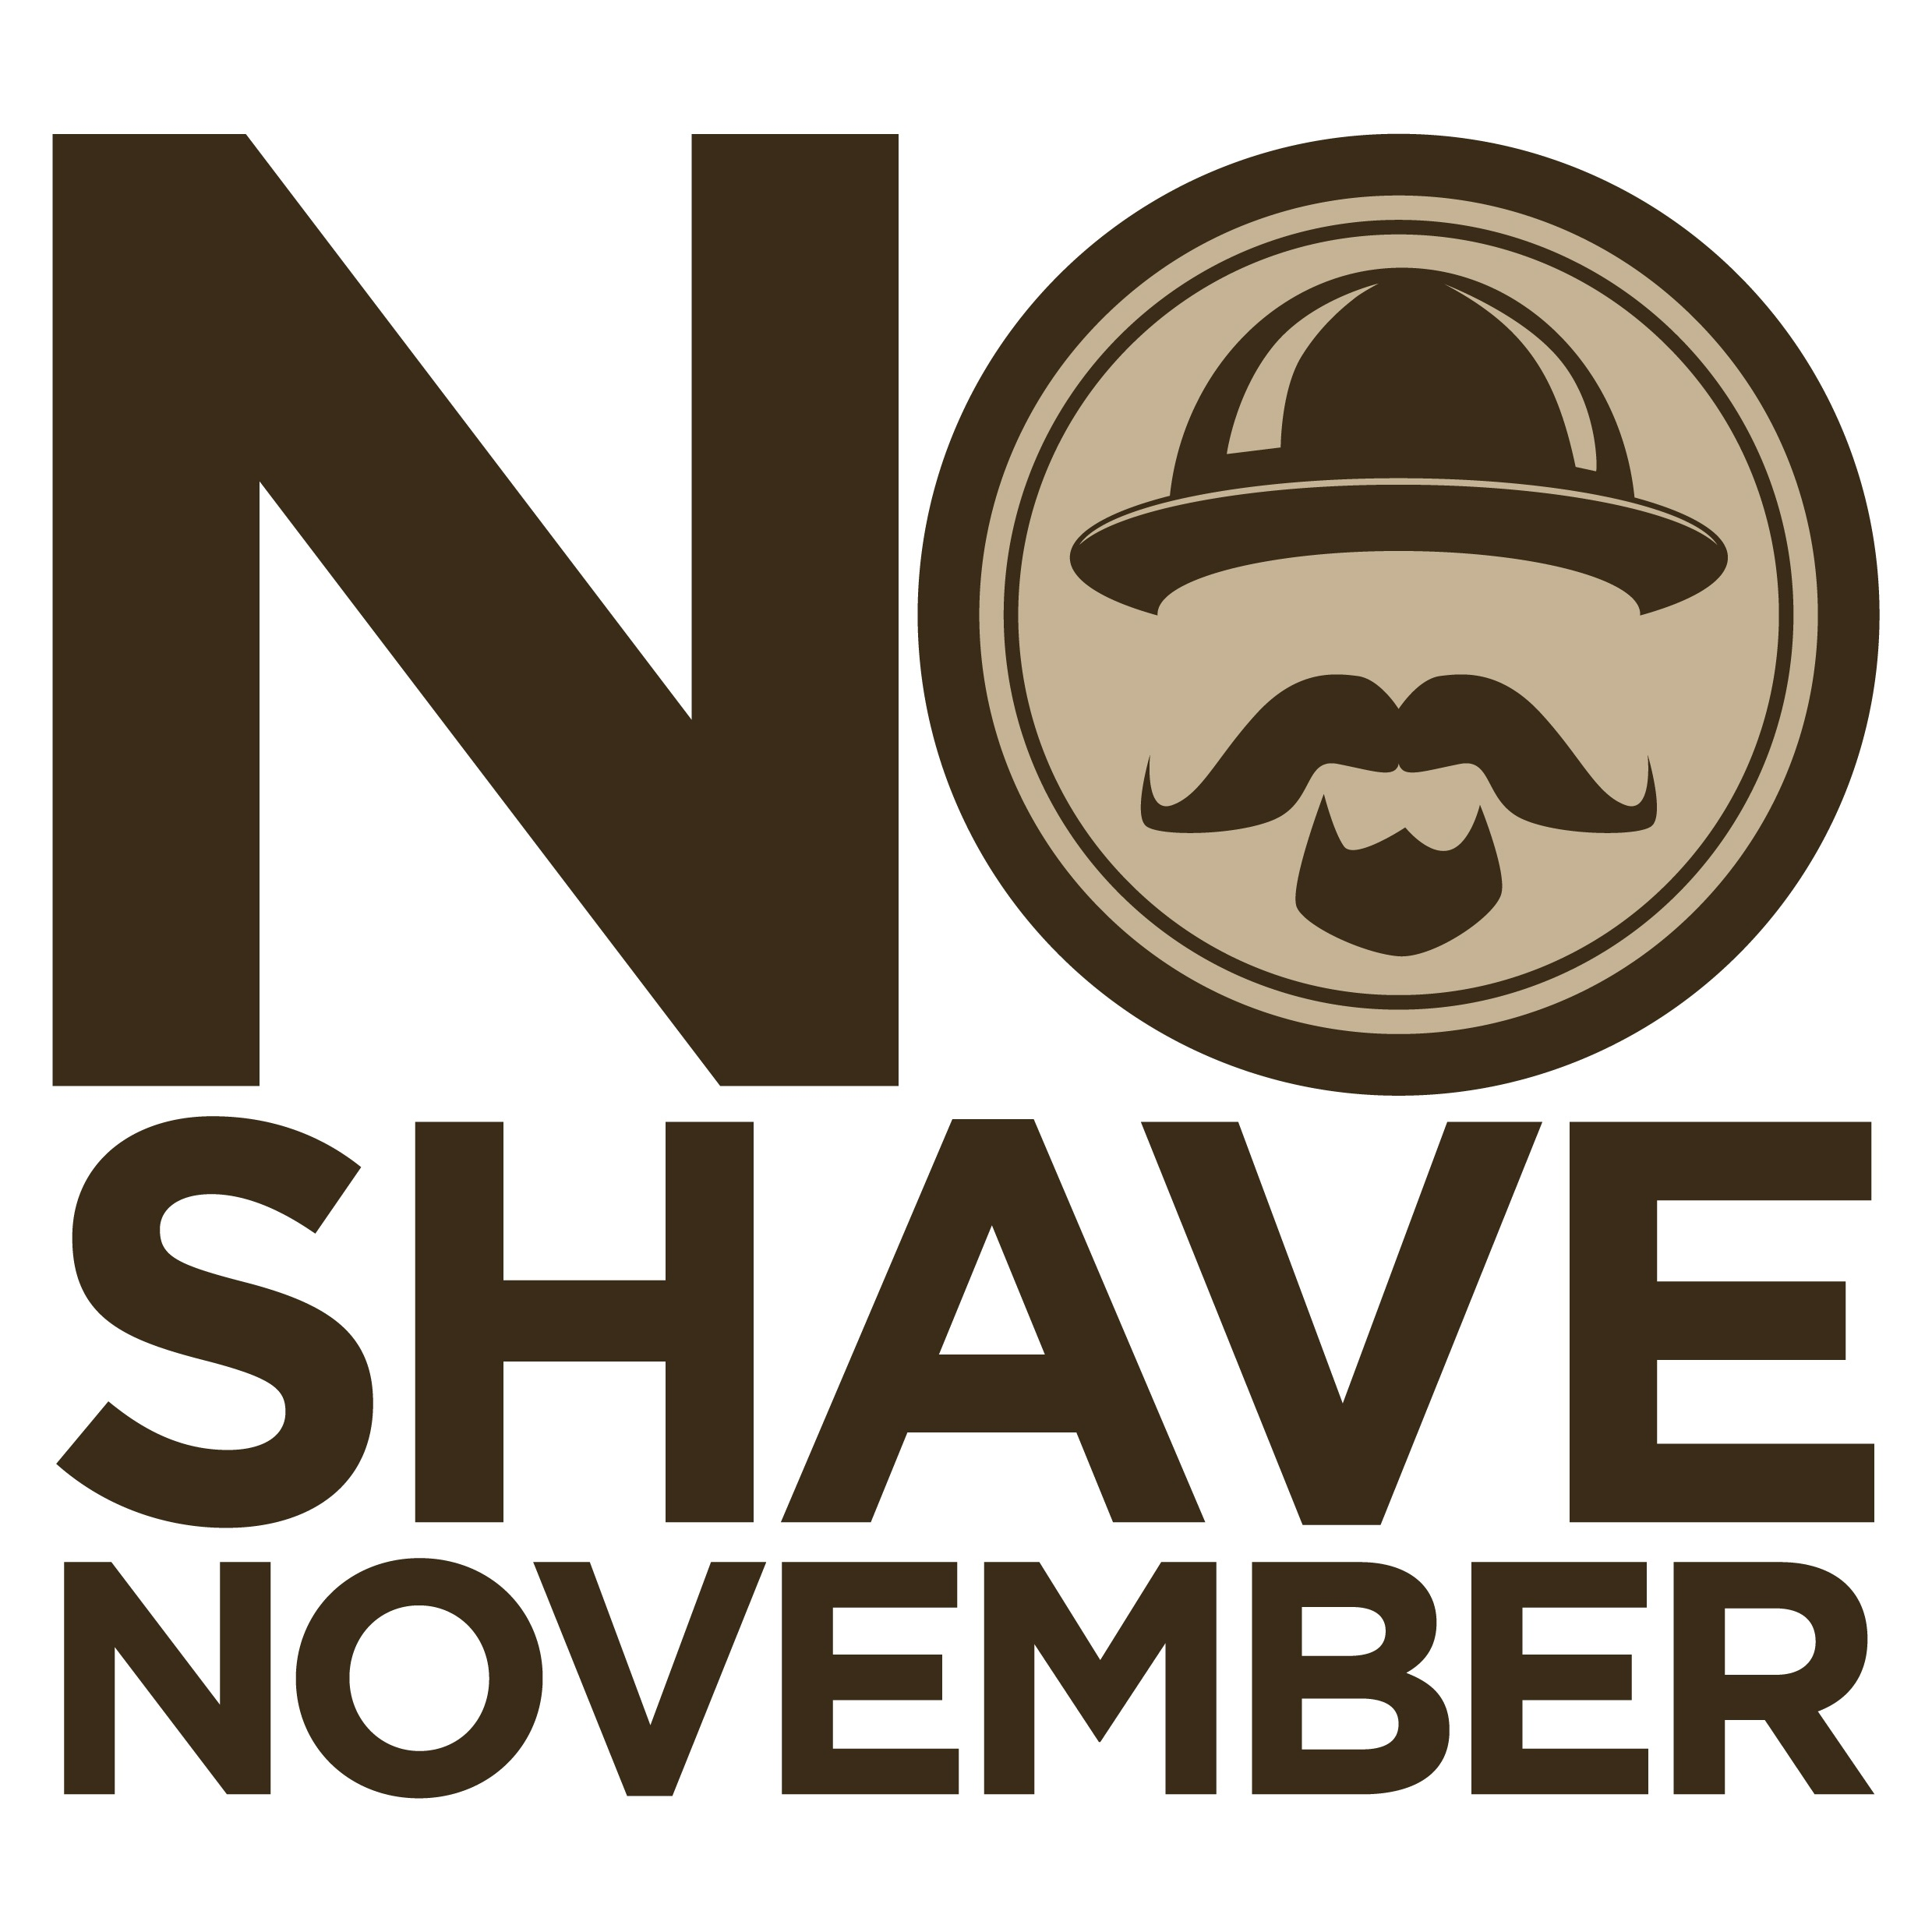 No shave november clipart clipground